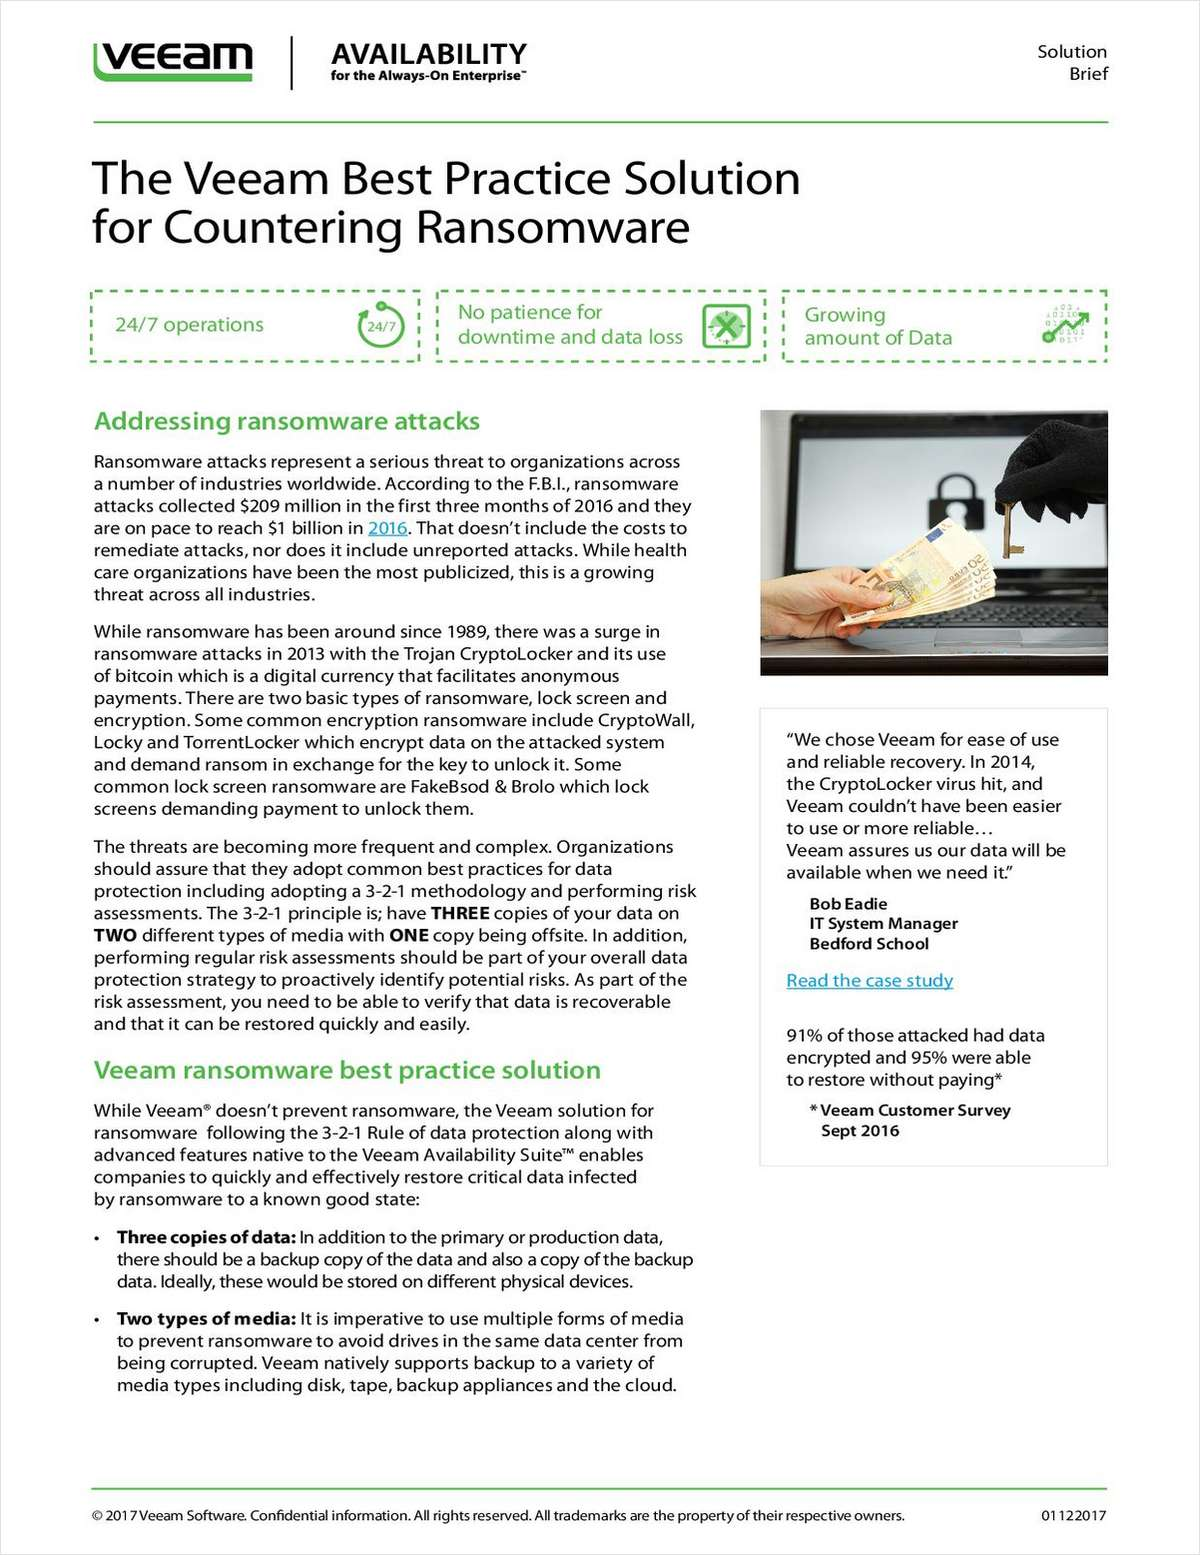 The Veeam Best Practice Solution for Countering Ransomware